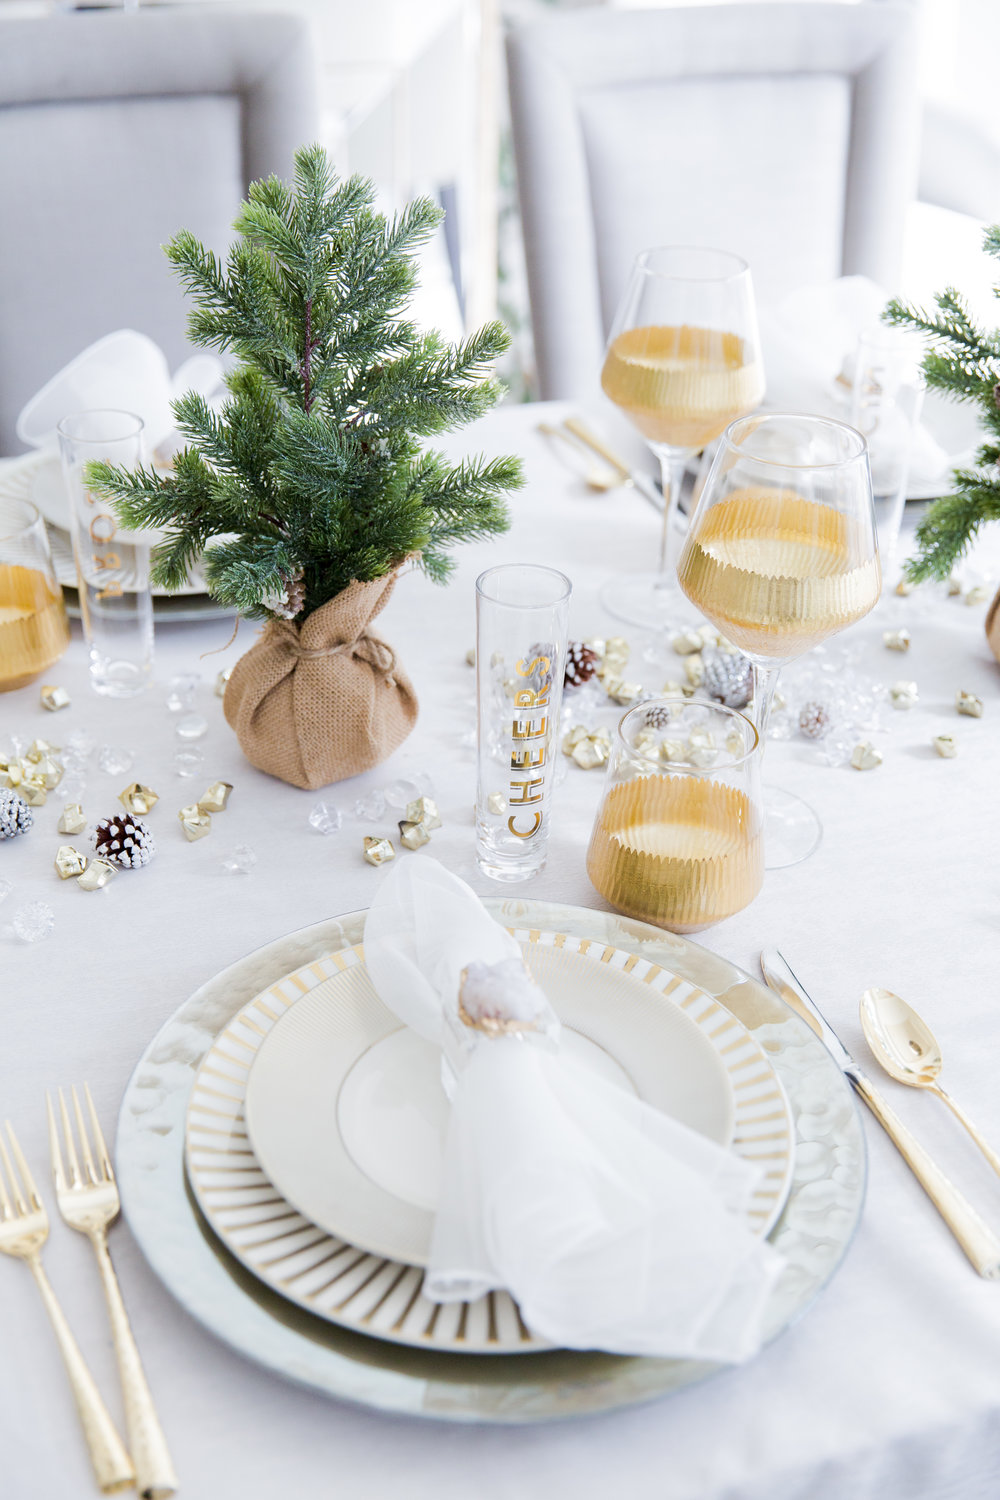 Home for the Holidays with The Fashionable Hostess in Nashville, TN | Tabletop styling | Holiday drink inspiration | The School of Styling www.theschoolofstyling.com